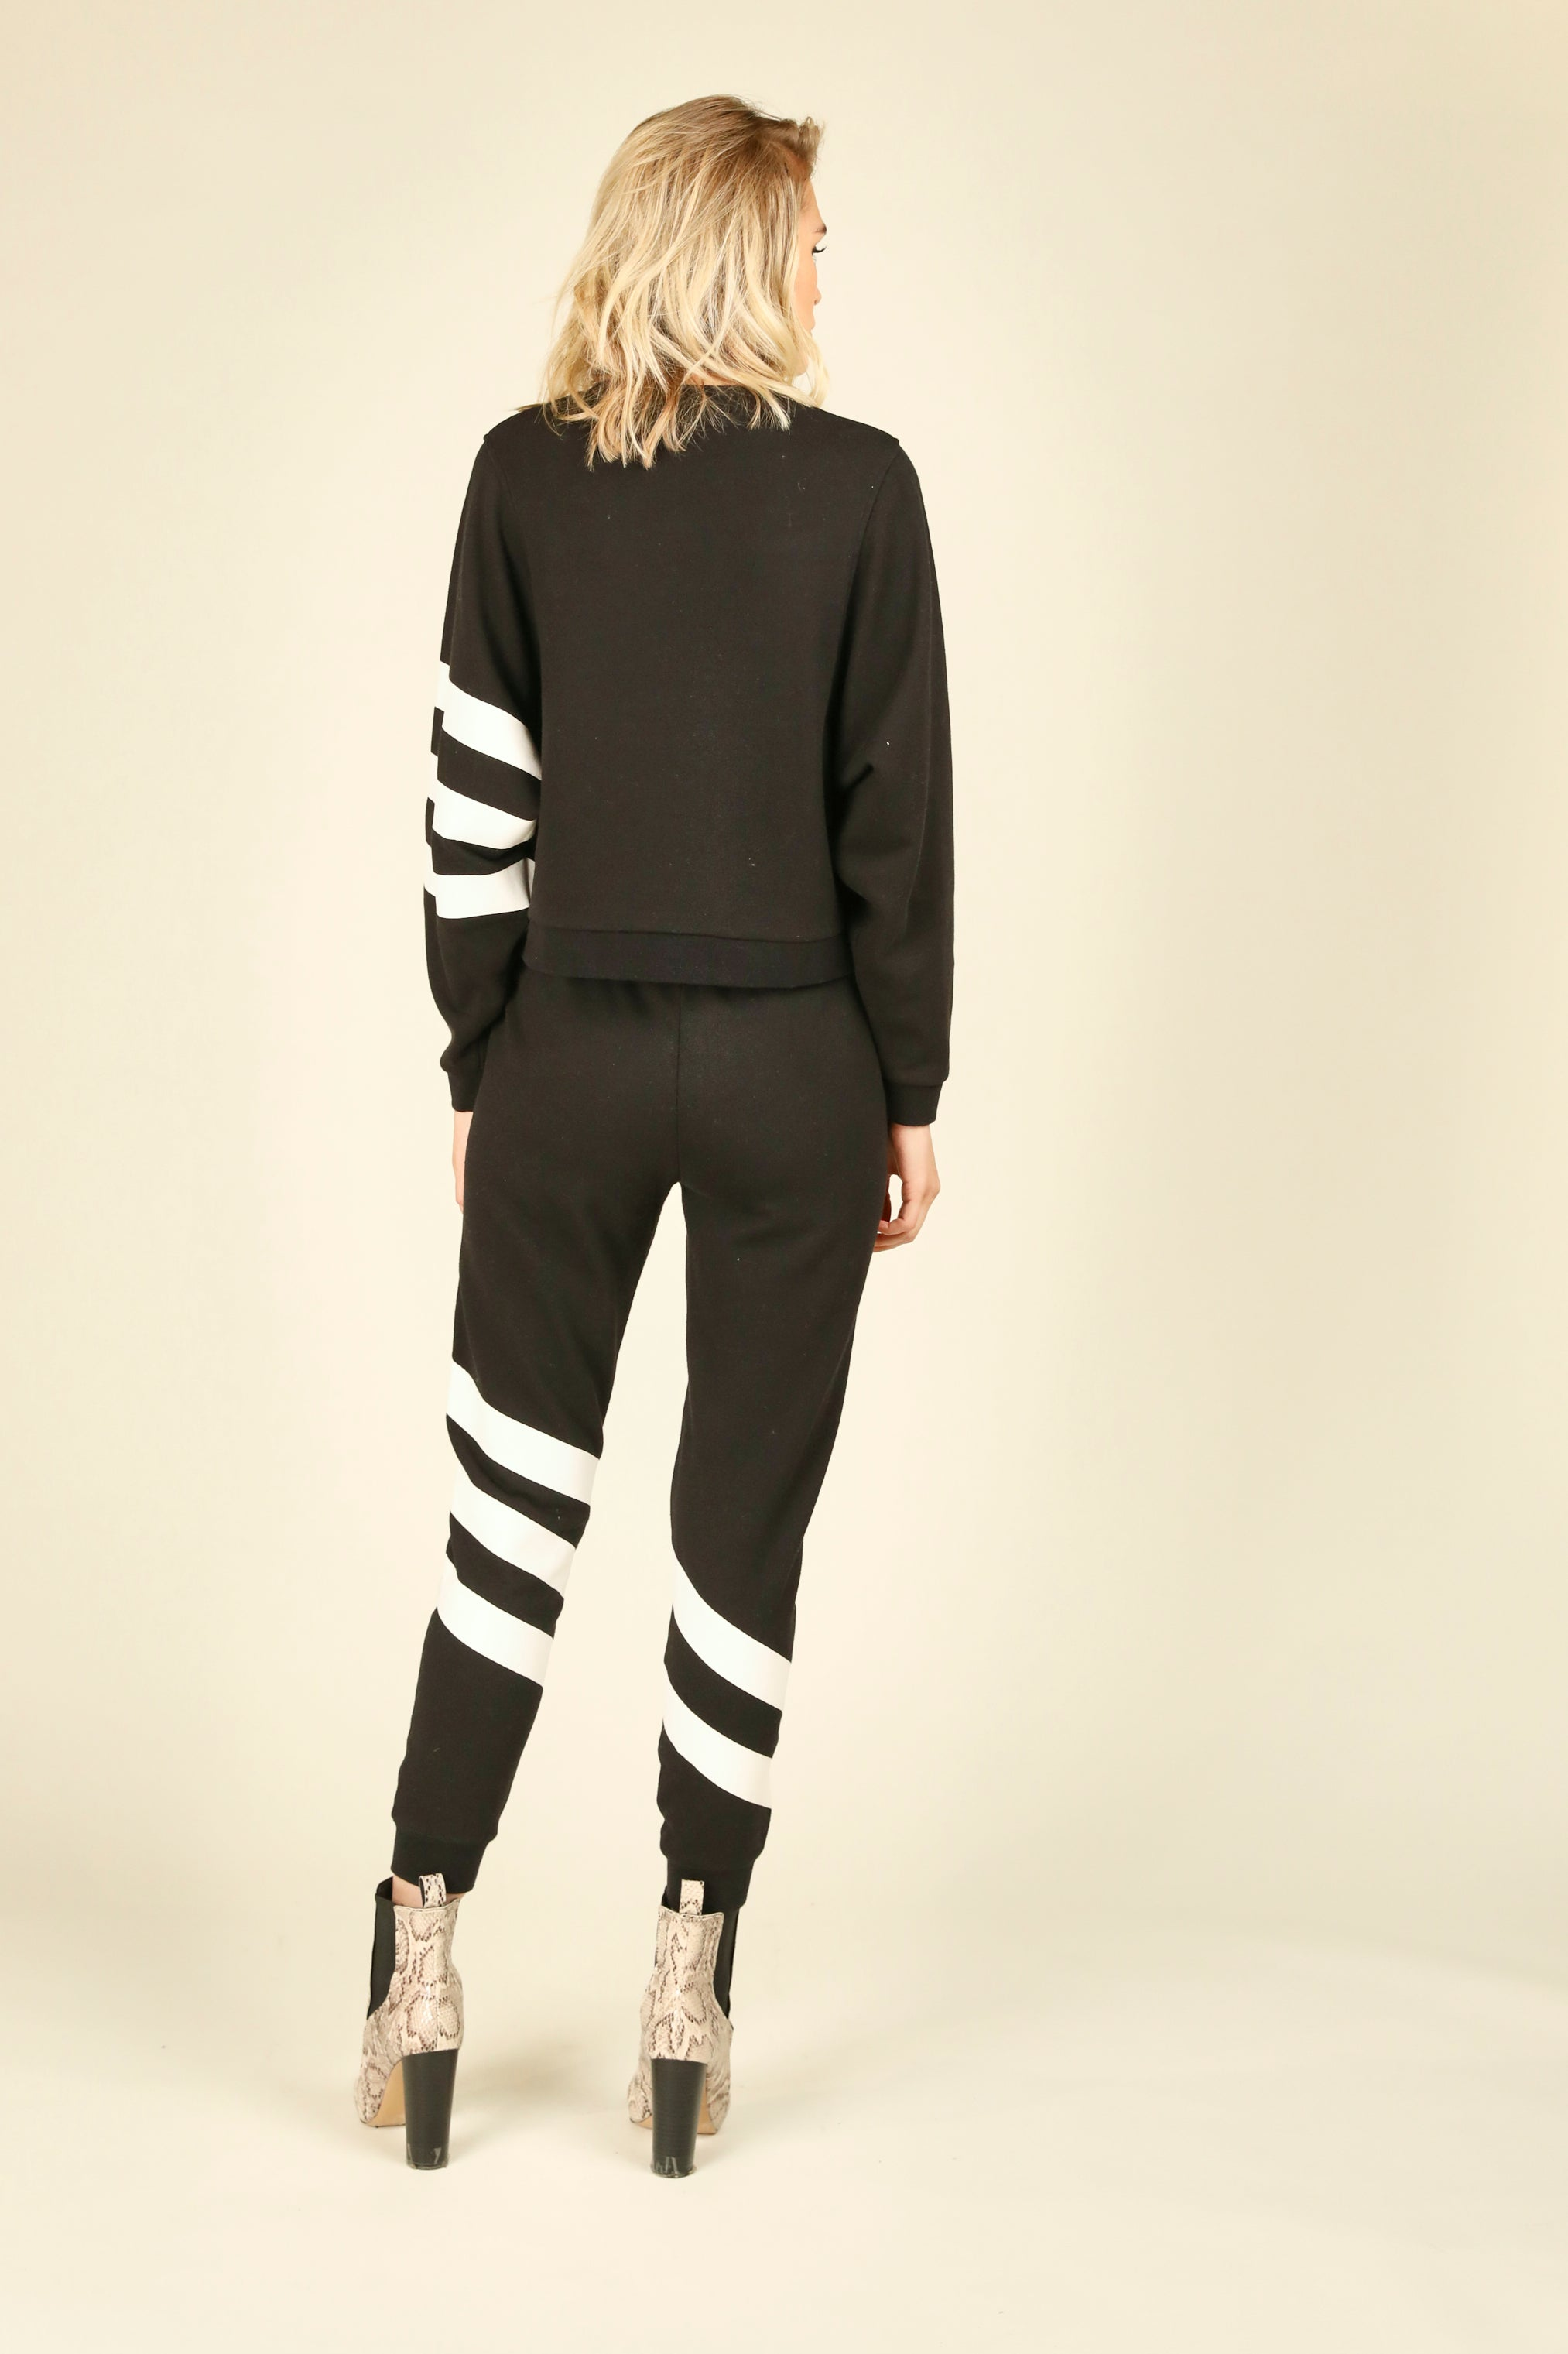 Black & White Stripe Crewneck